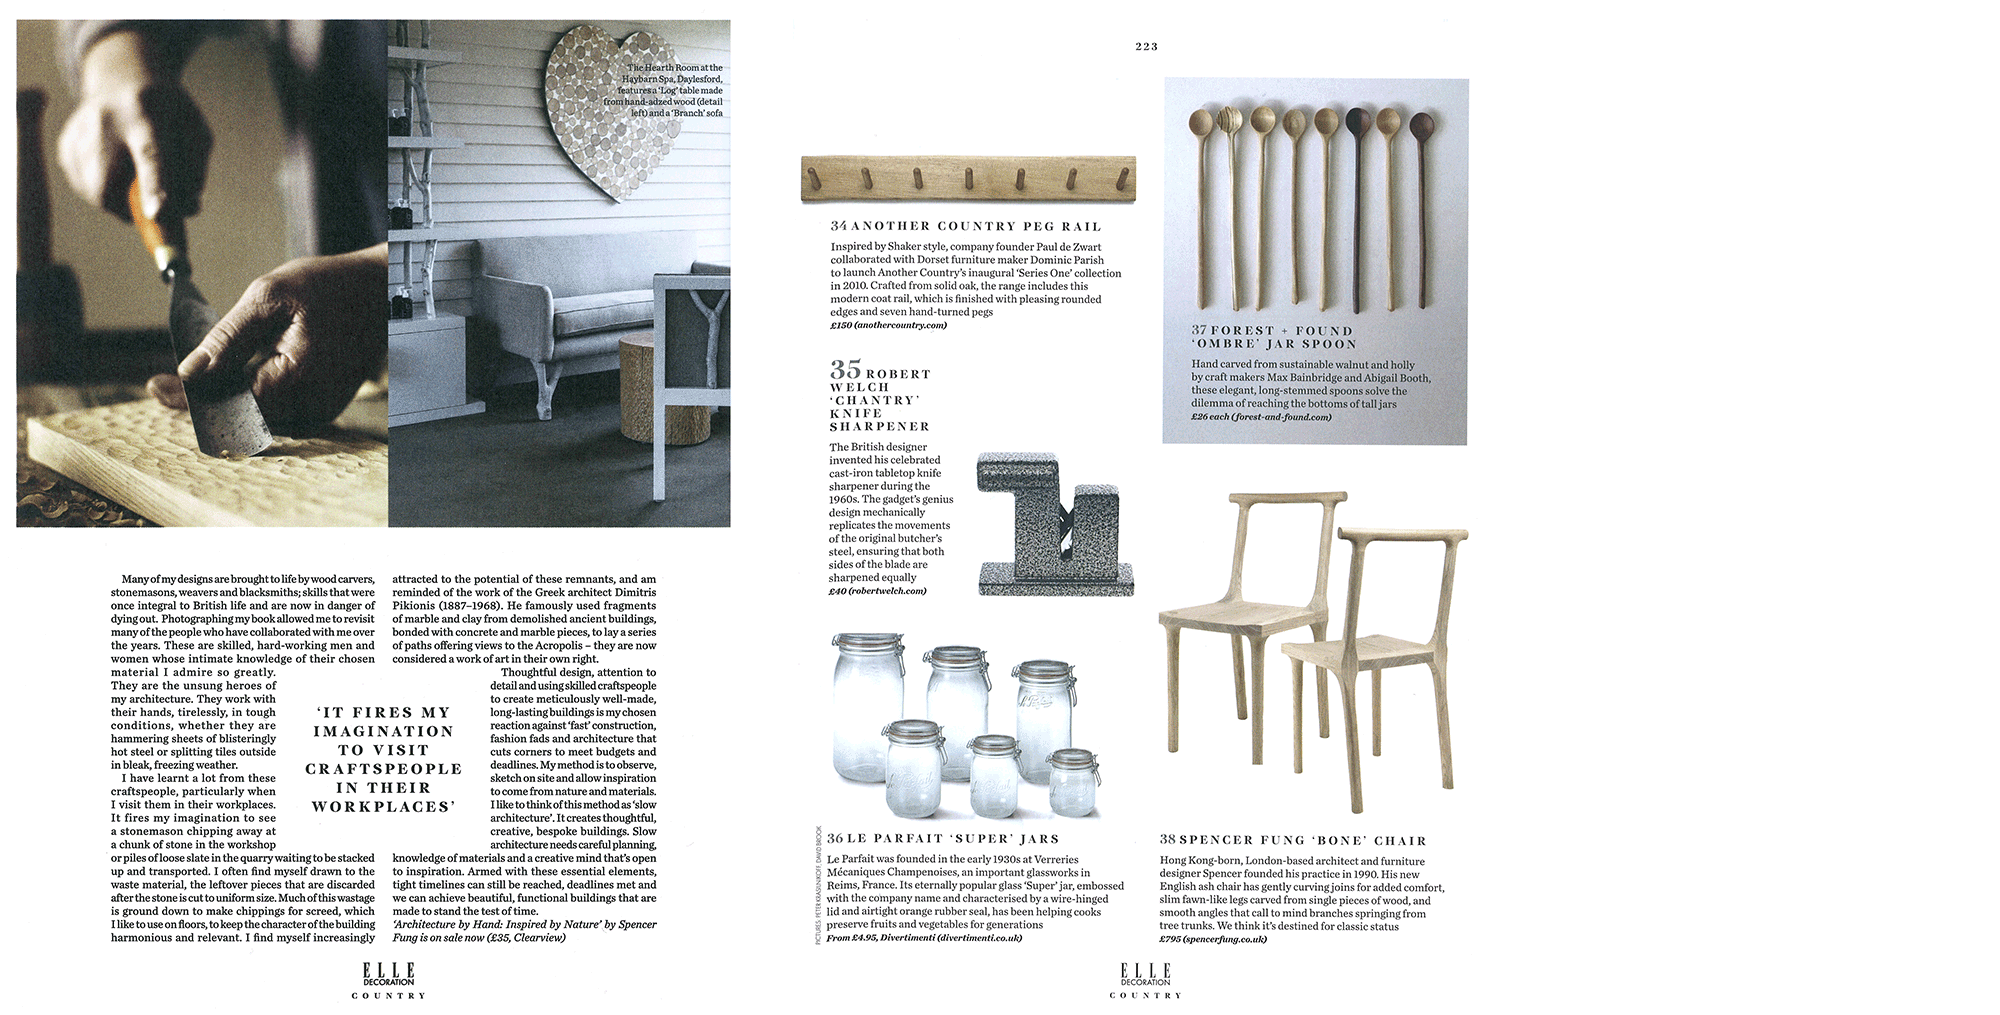 Elle Decoration Country Aw 16 Spencer Fung Architects